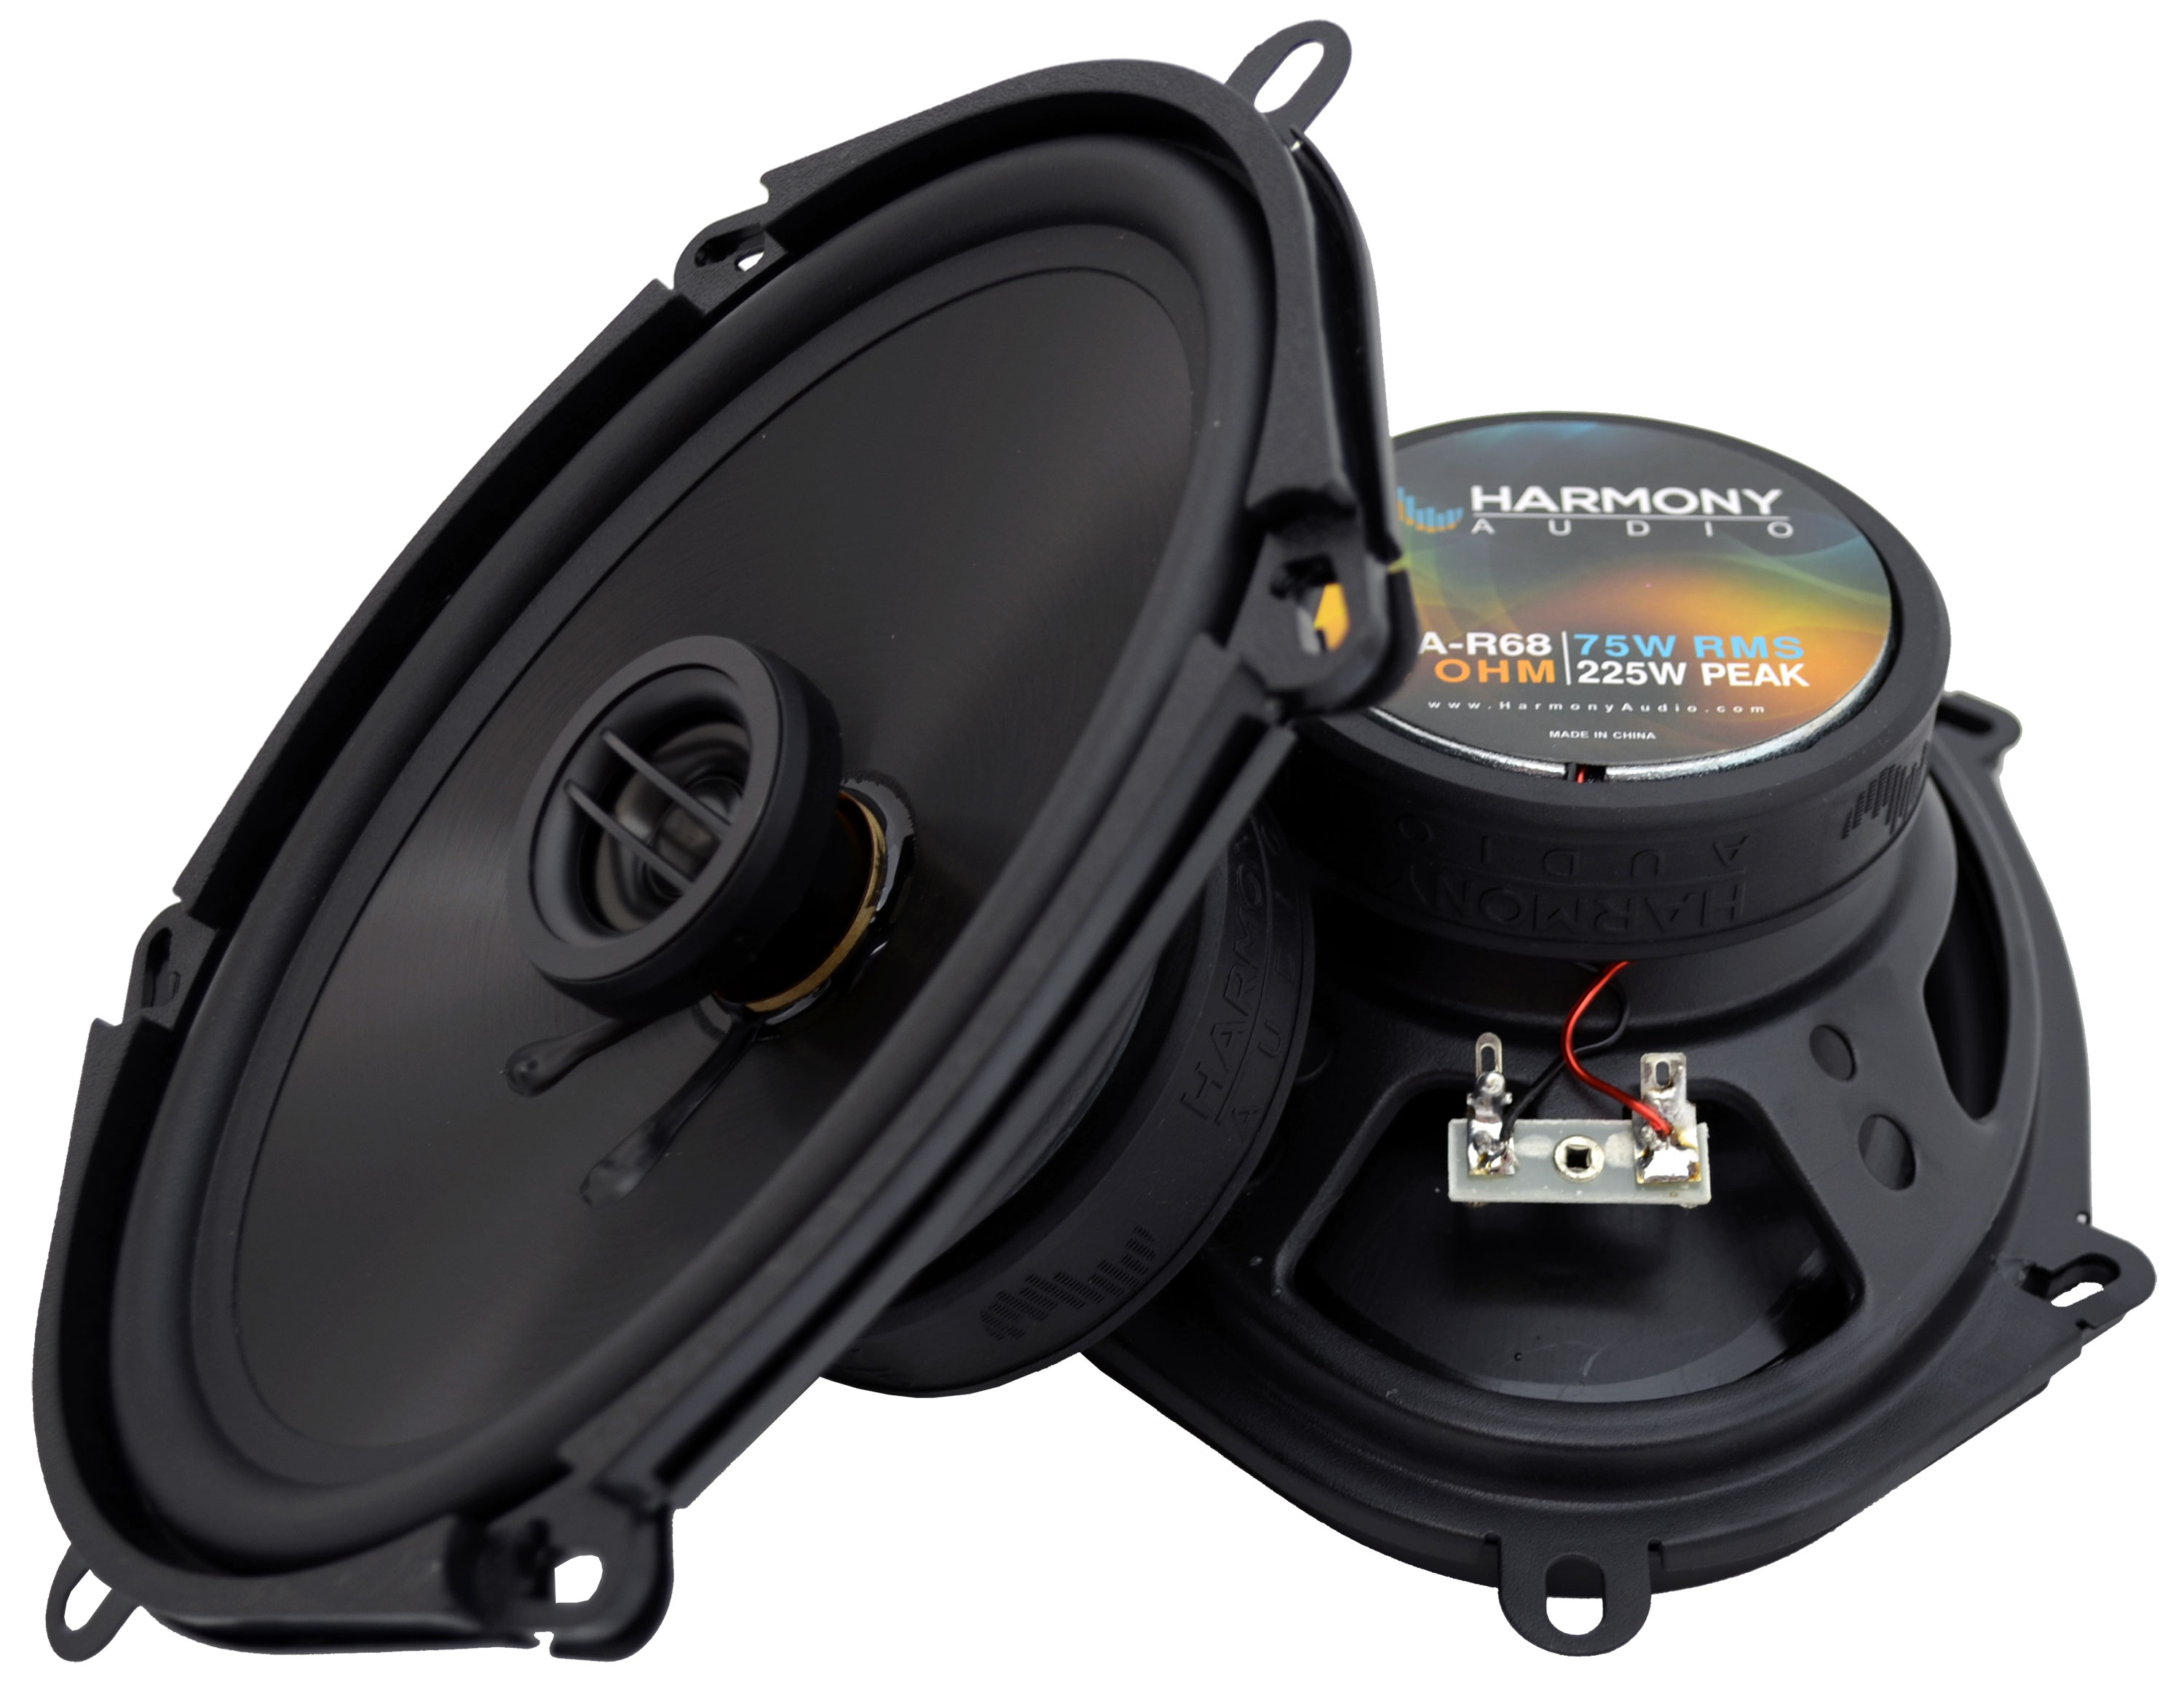 Fits BMW 5 Series 1990-1996 Rear Deck Replacement Harmony HA-R68 Speakers New